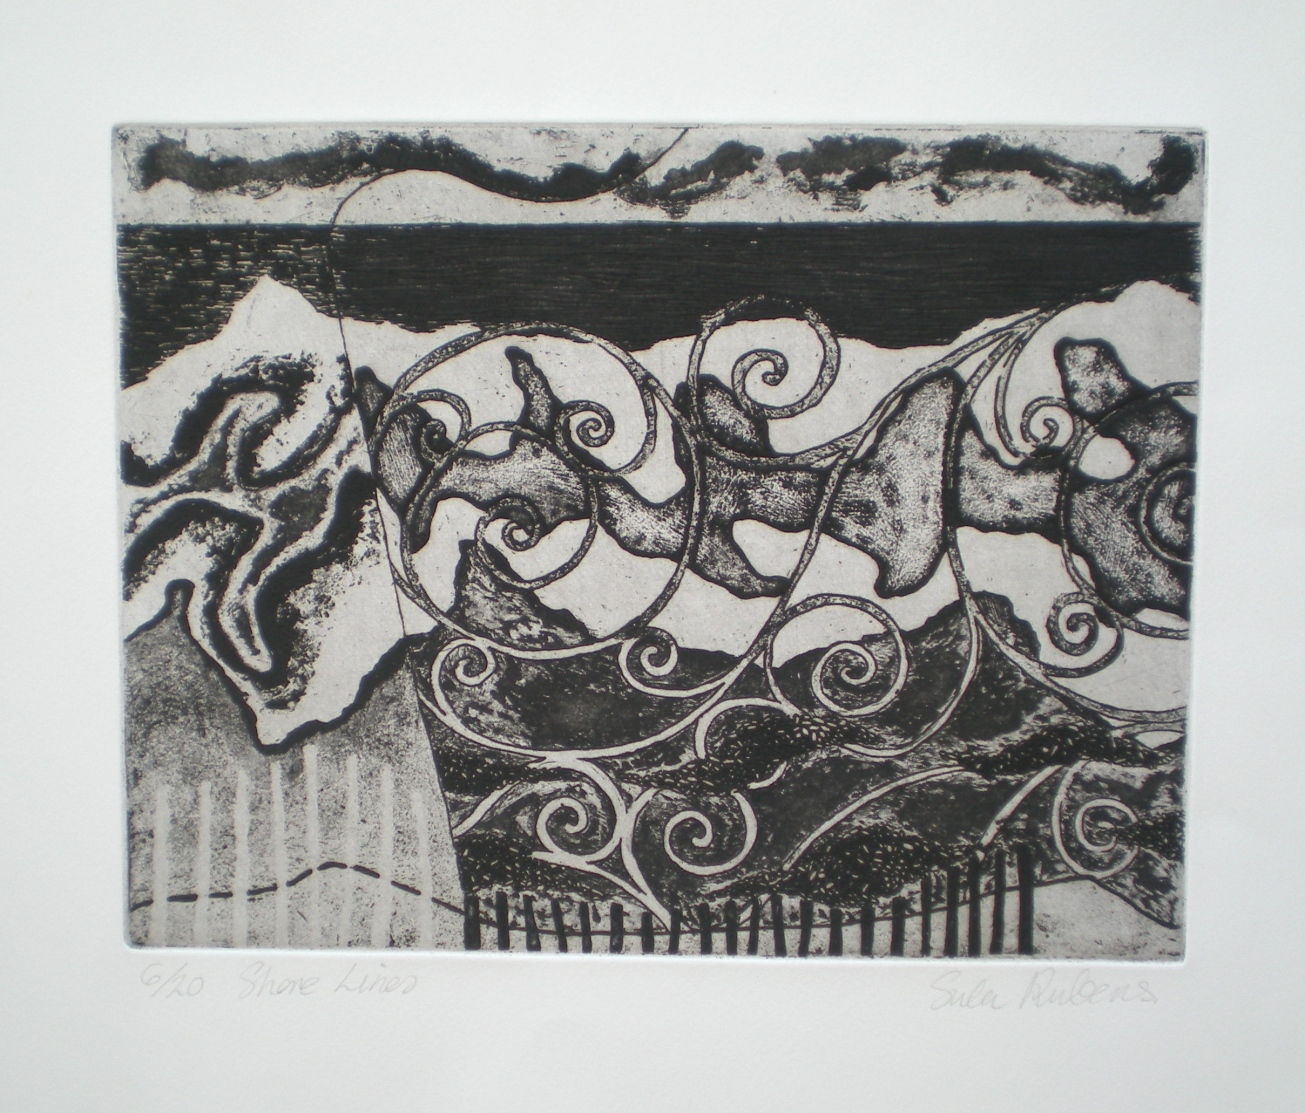 SHORE LINES etching